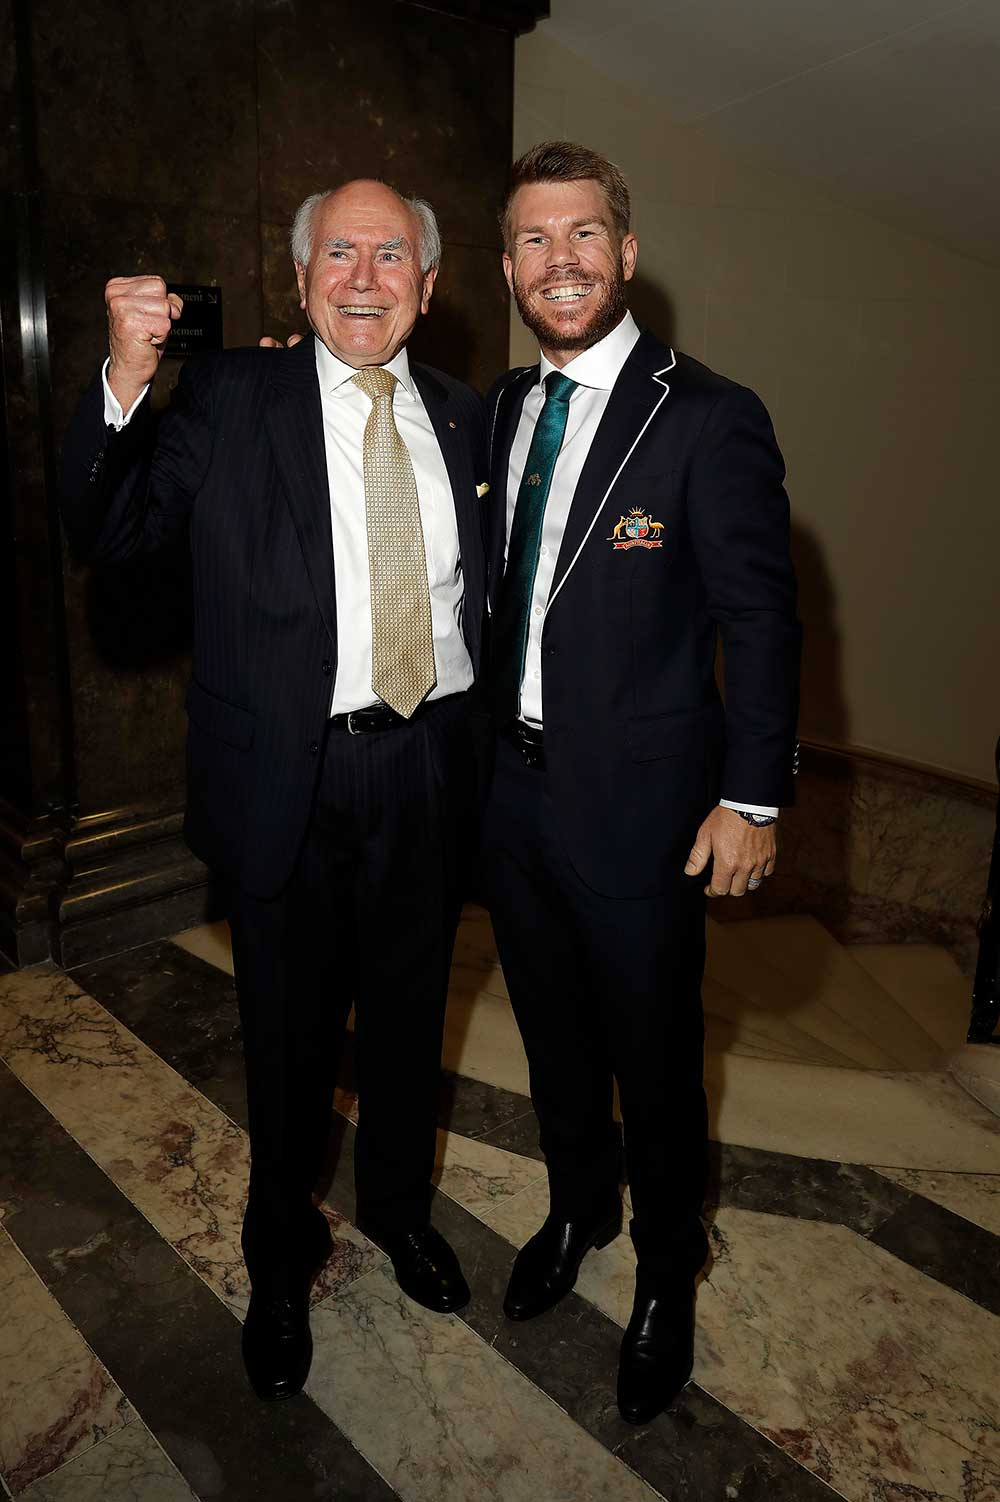 Former PM John Howard and David Warner at a London function for the Australian men's cricket team // Getty